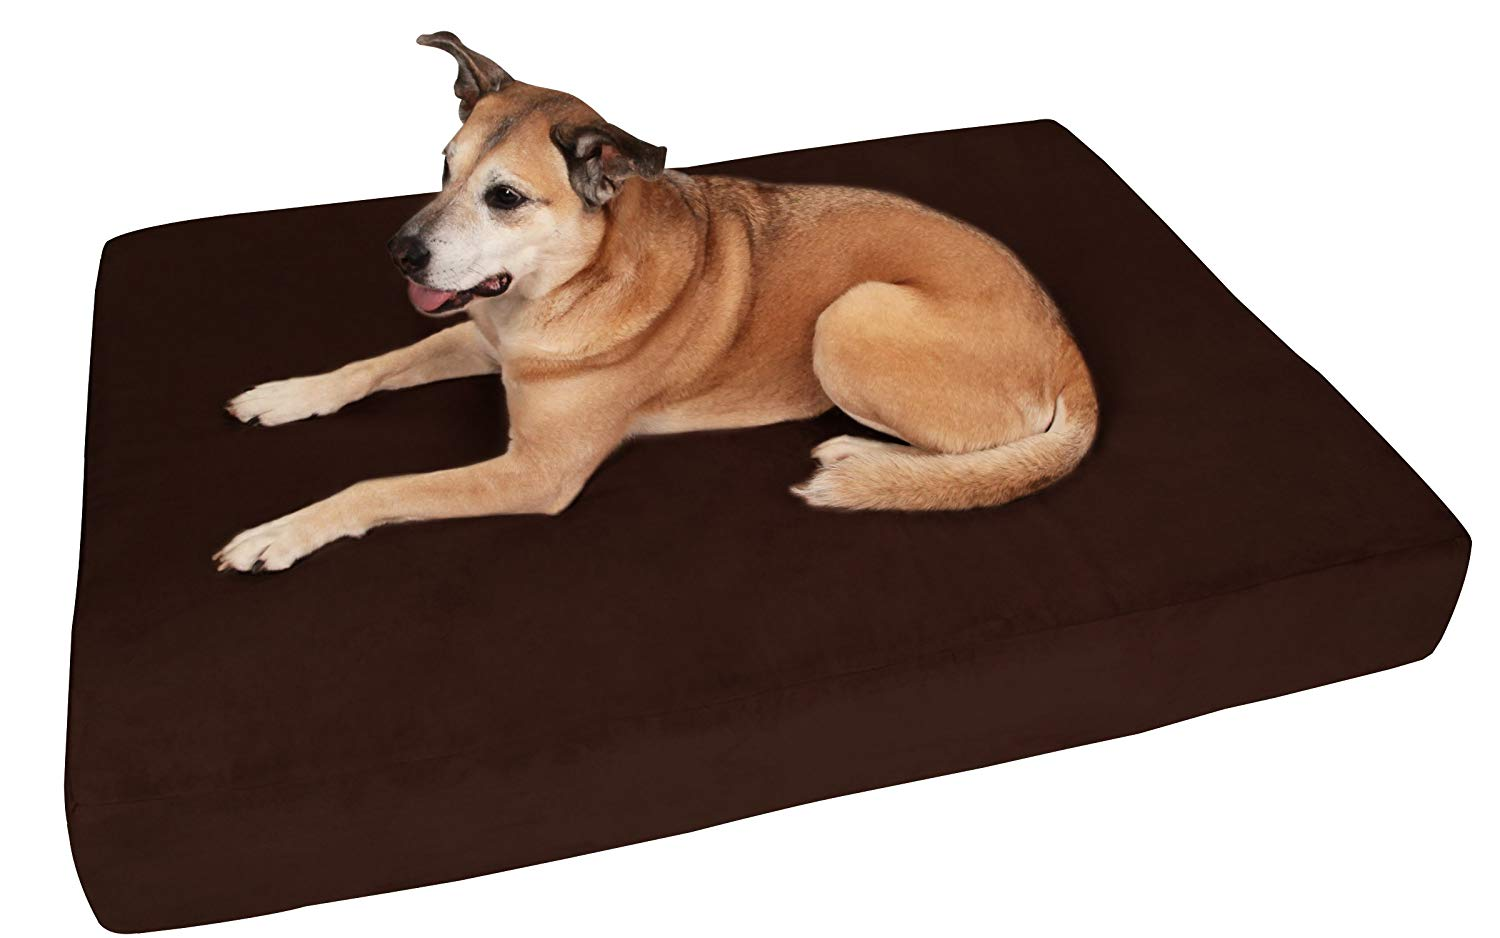 Big Barker 7 Pillow Top Orthopedic Dog Bed Review by www.puppyurl.com